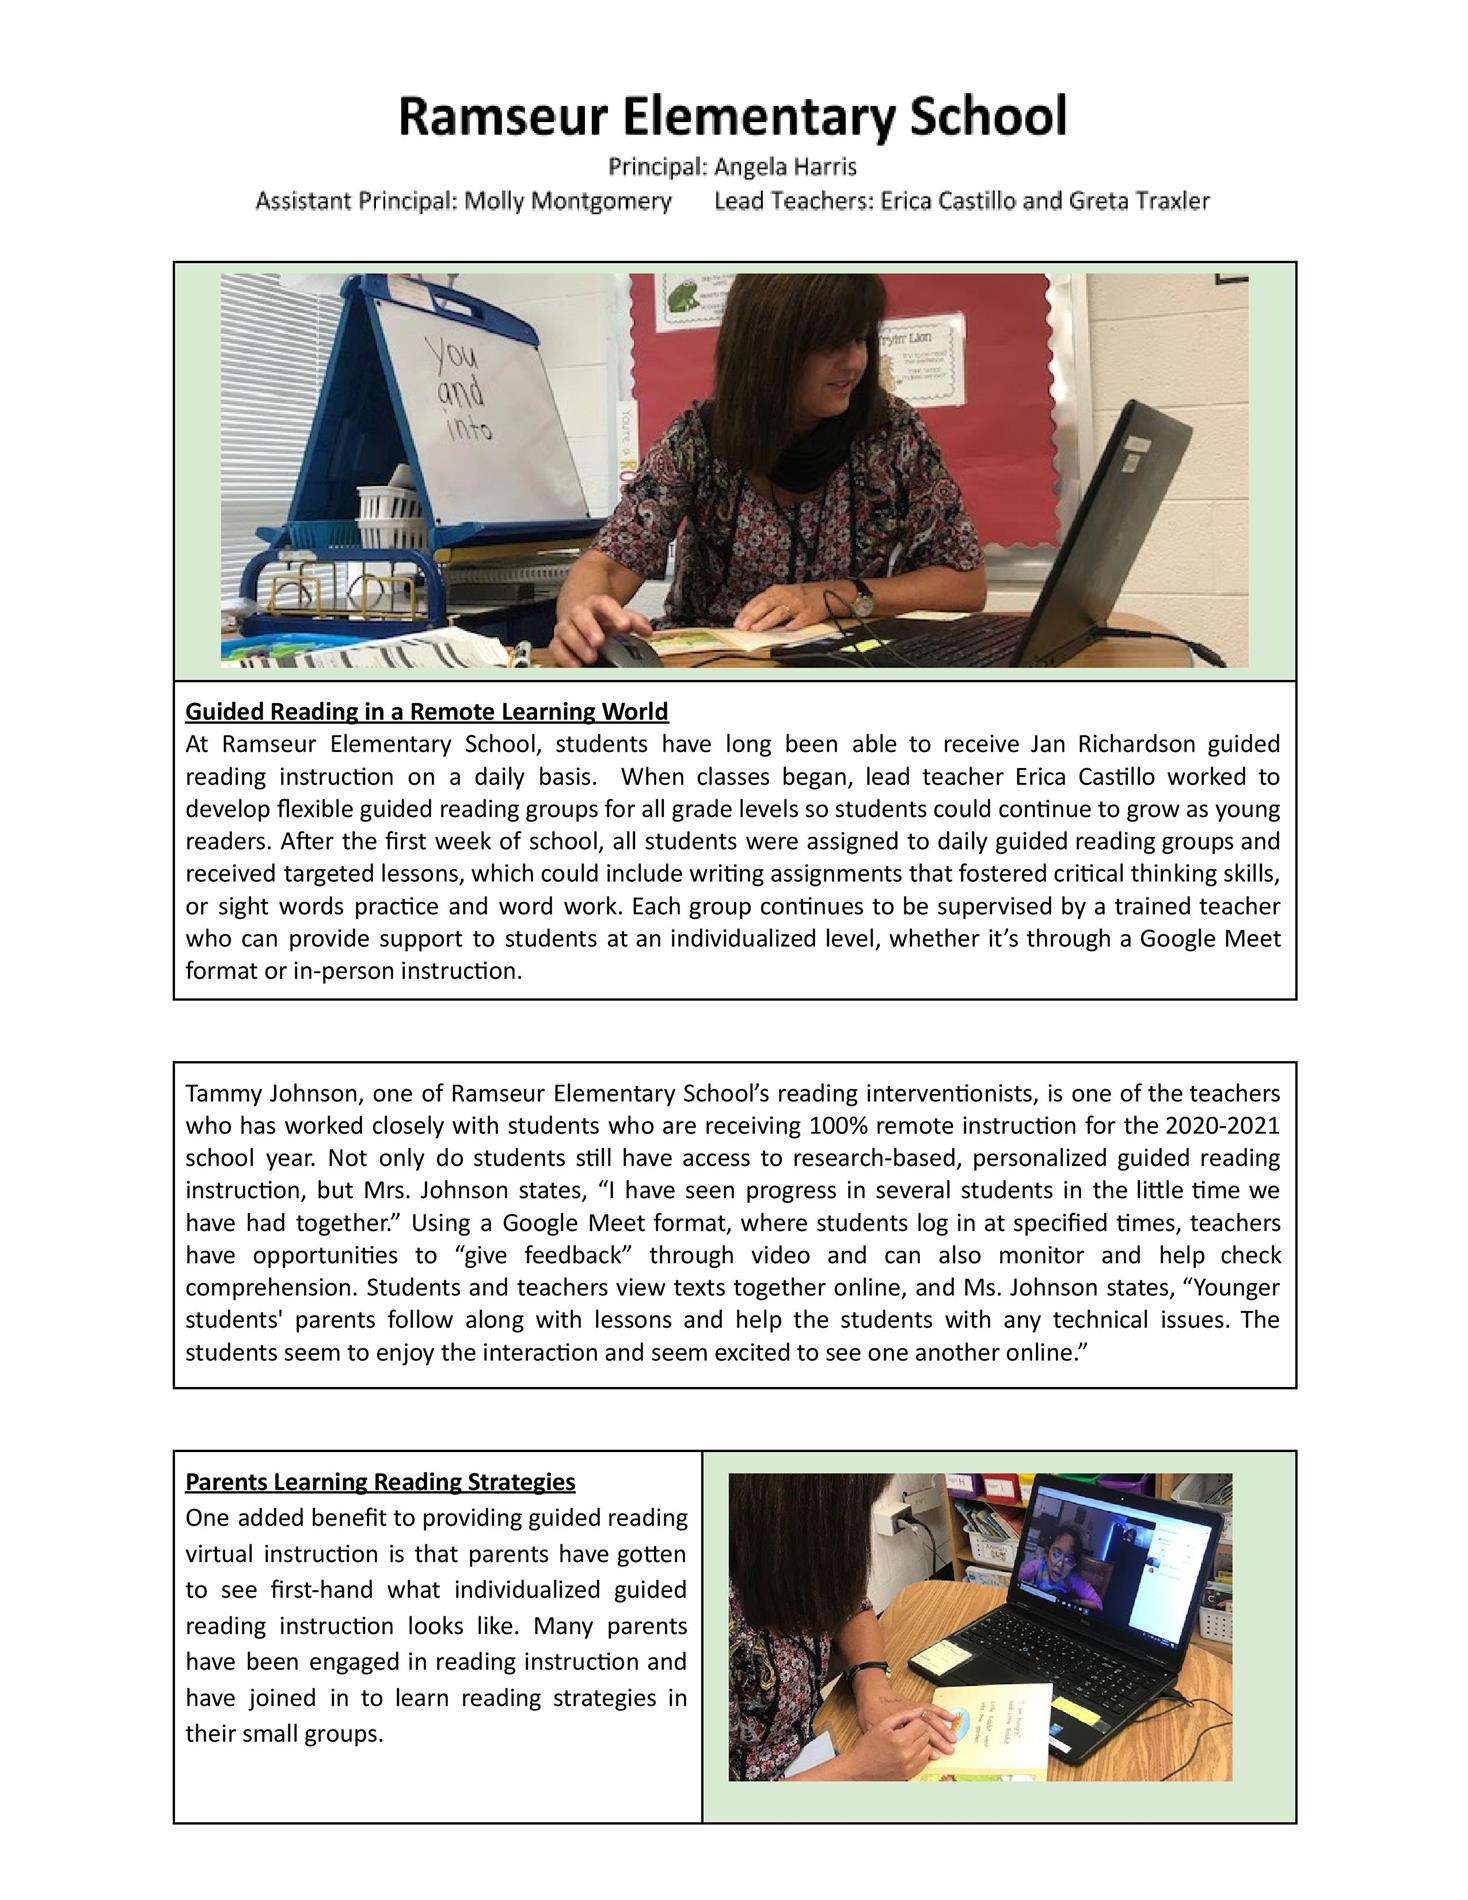 Remote Learning in Guided Reading